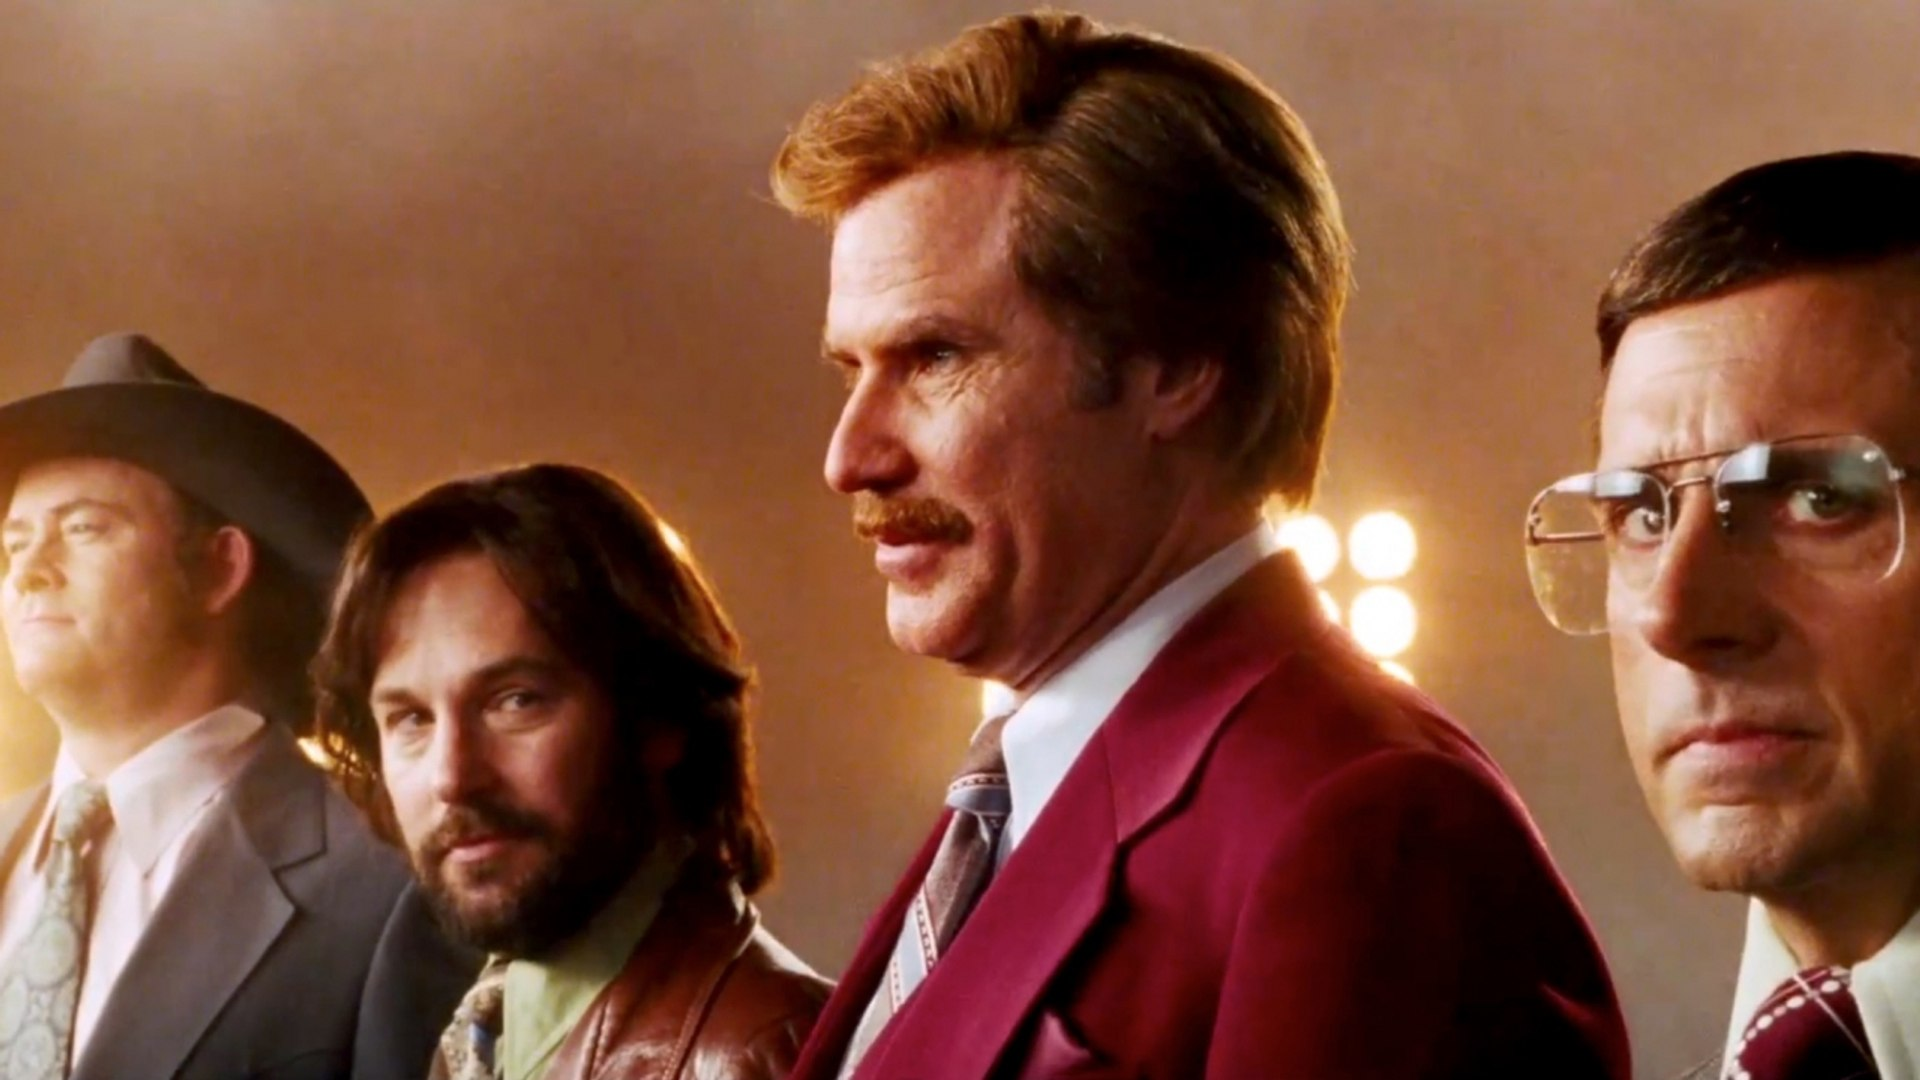 Watch Anchorman 2 The Legend Continues Full Movie Streaming Online 2013 720p Video Dailymotion